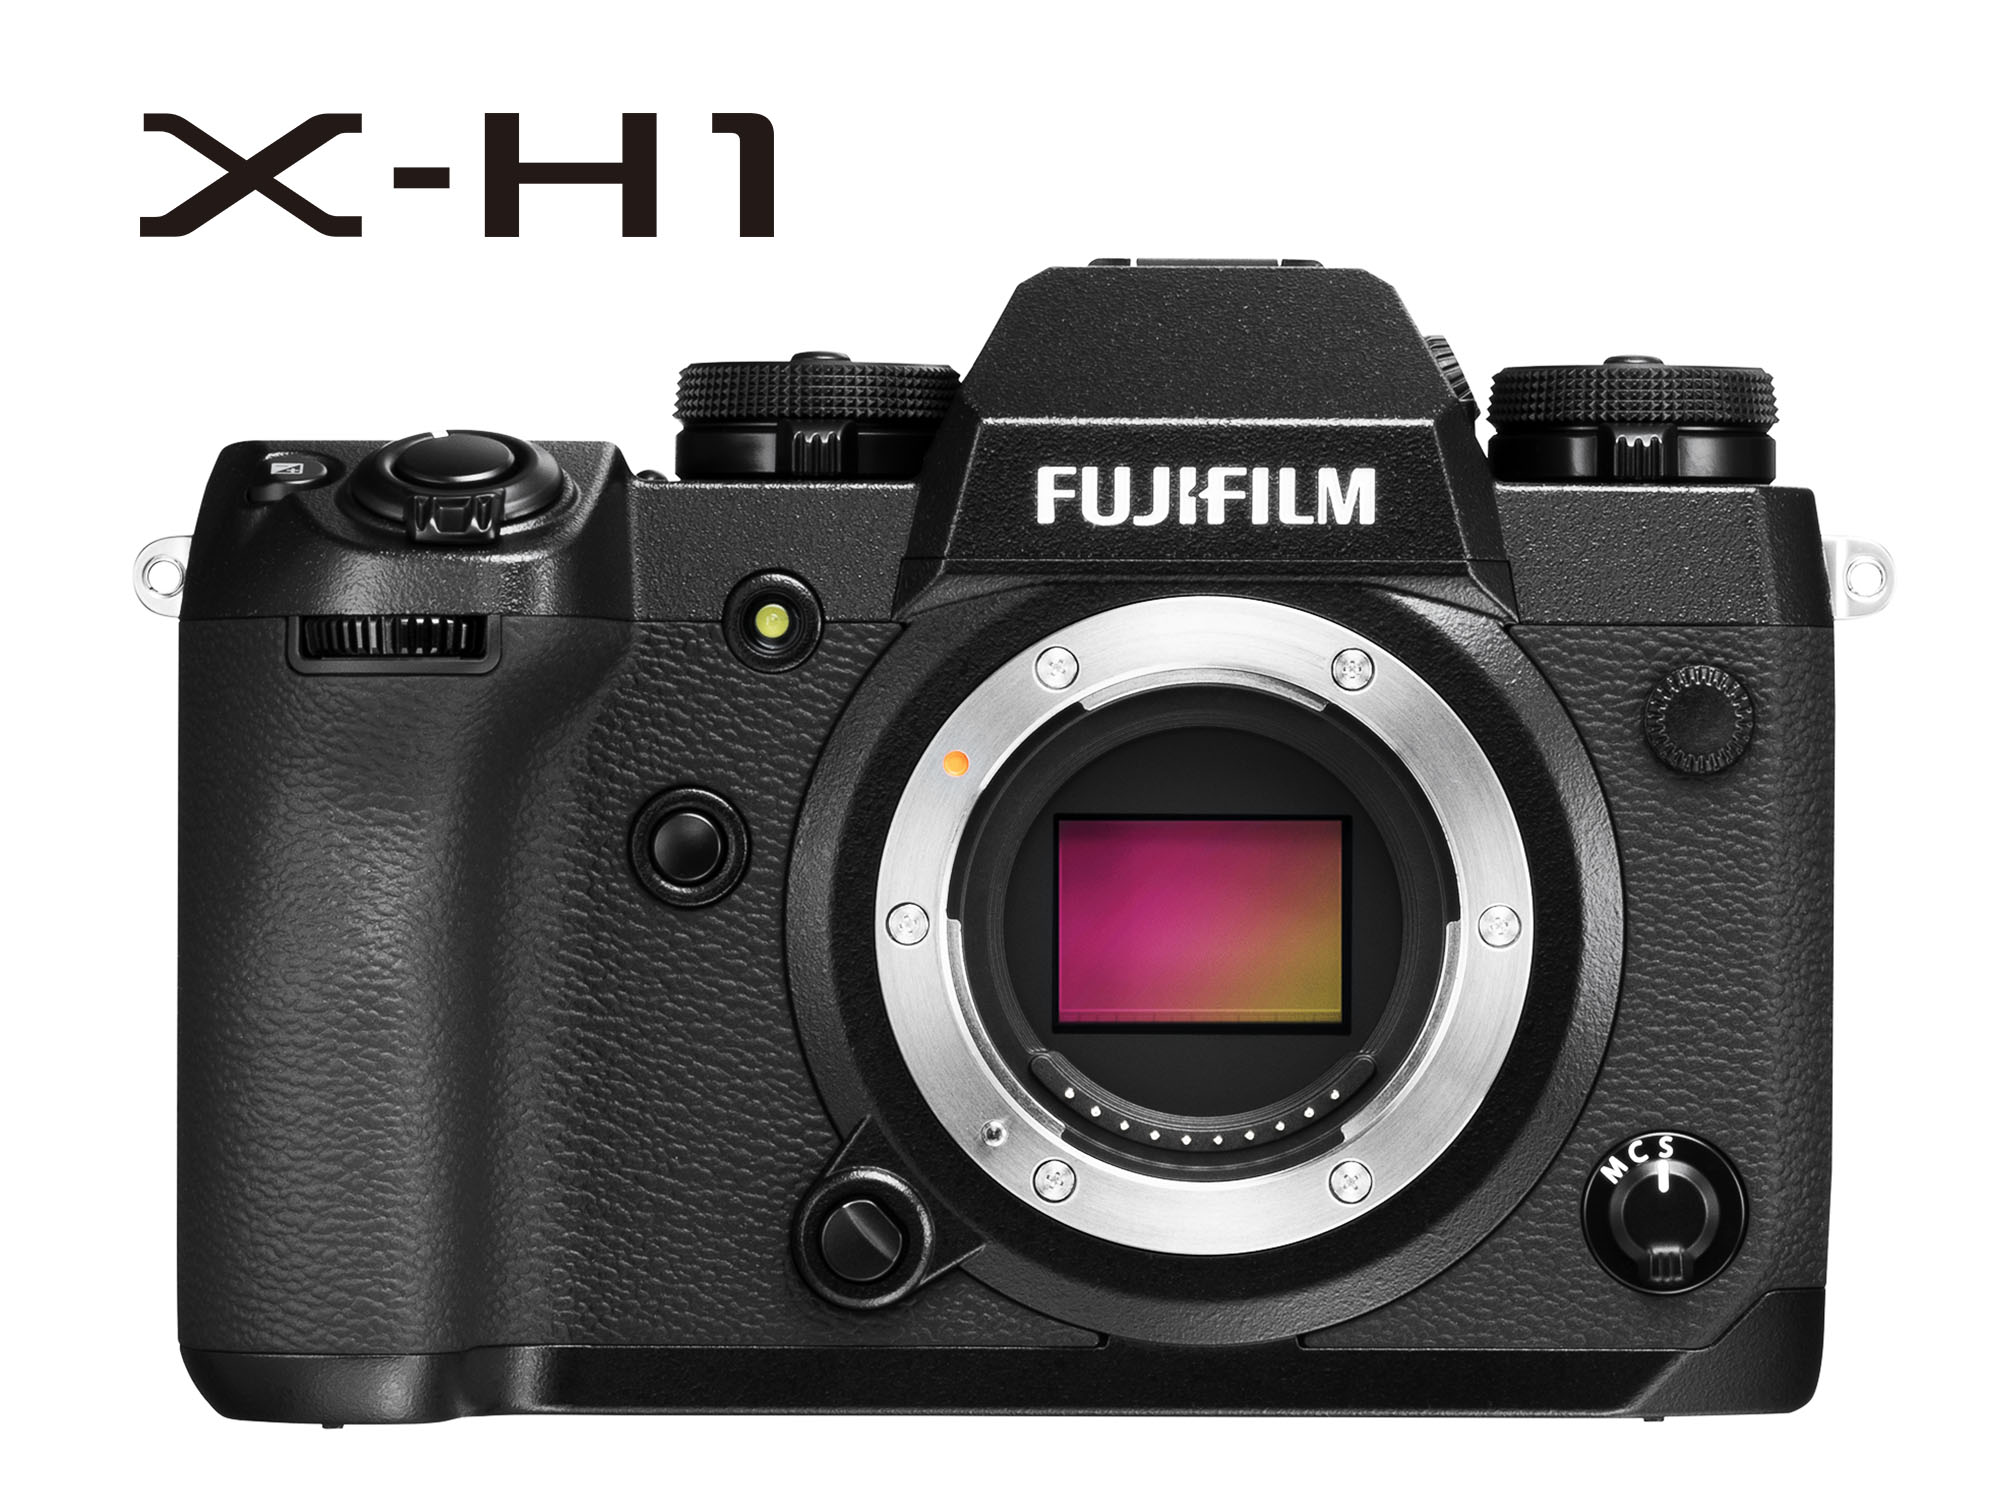 Fujifilm X-H1 Body Only